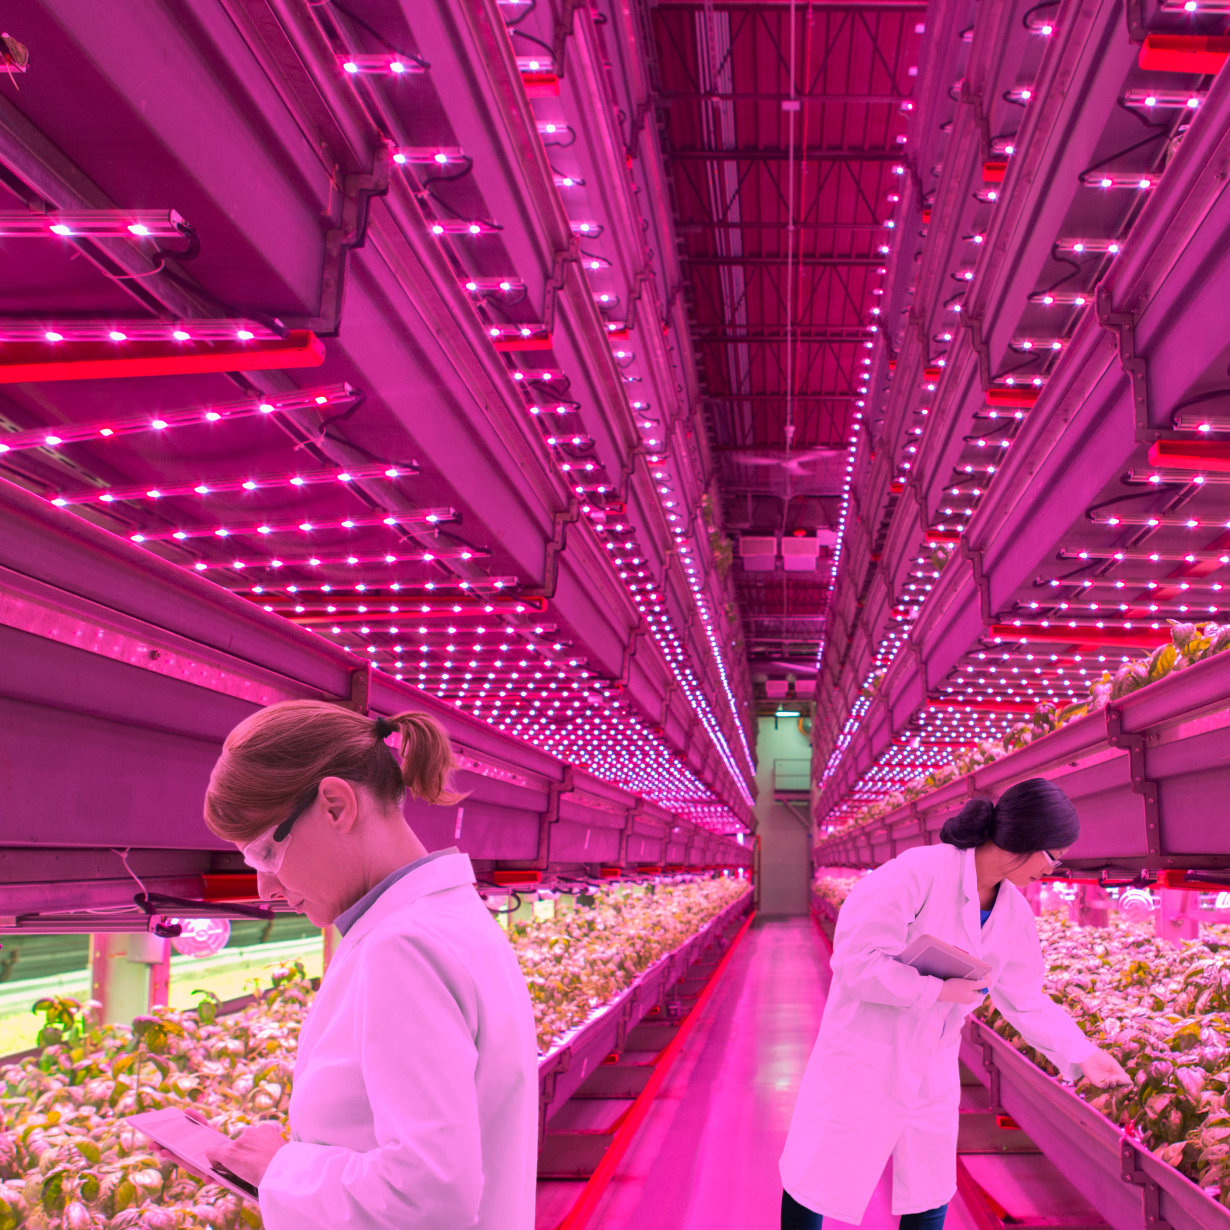 Eclairage Led Agricole Leds For Horticulture Lighting Osram Opto Semiconductors